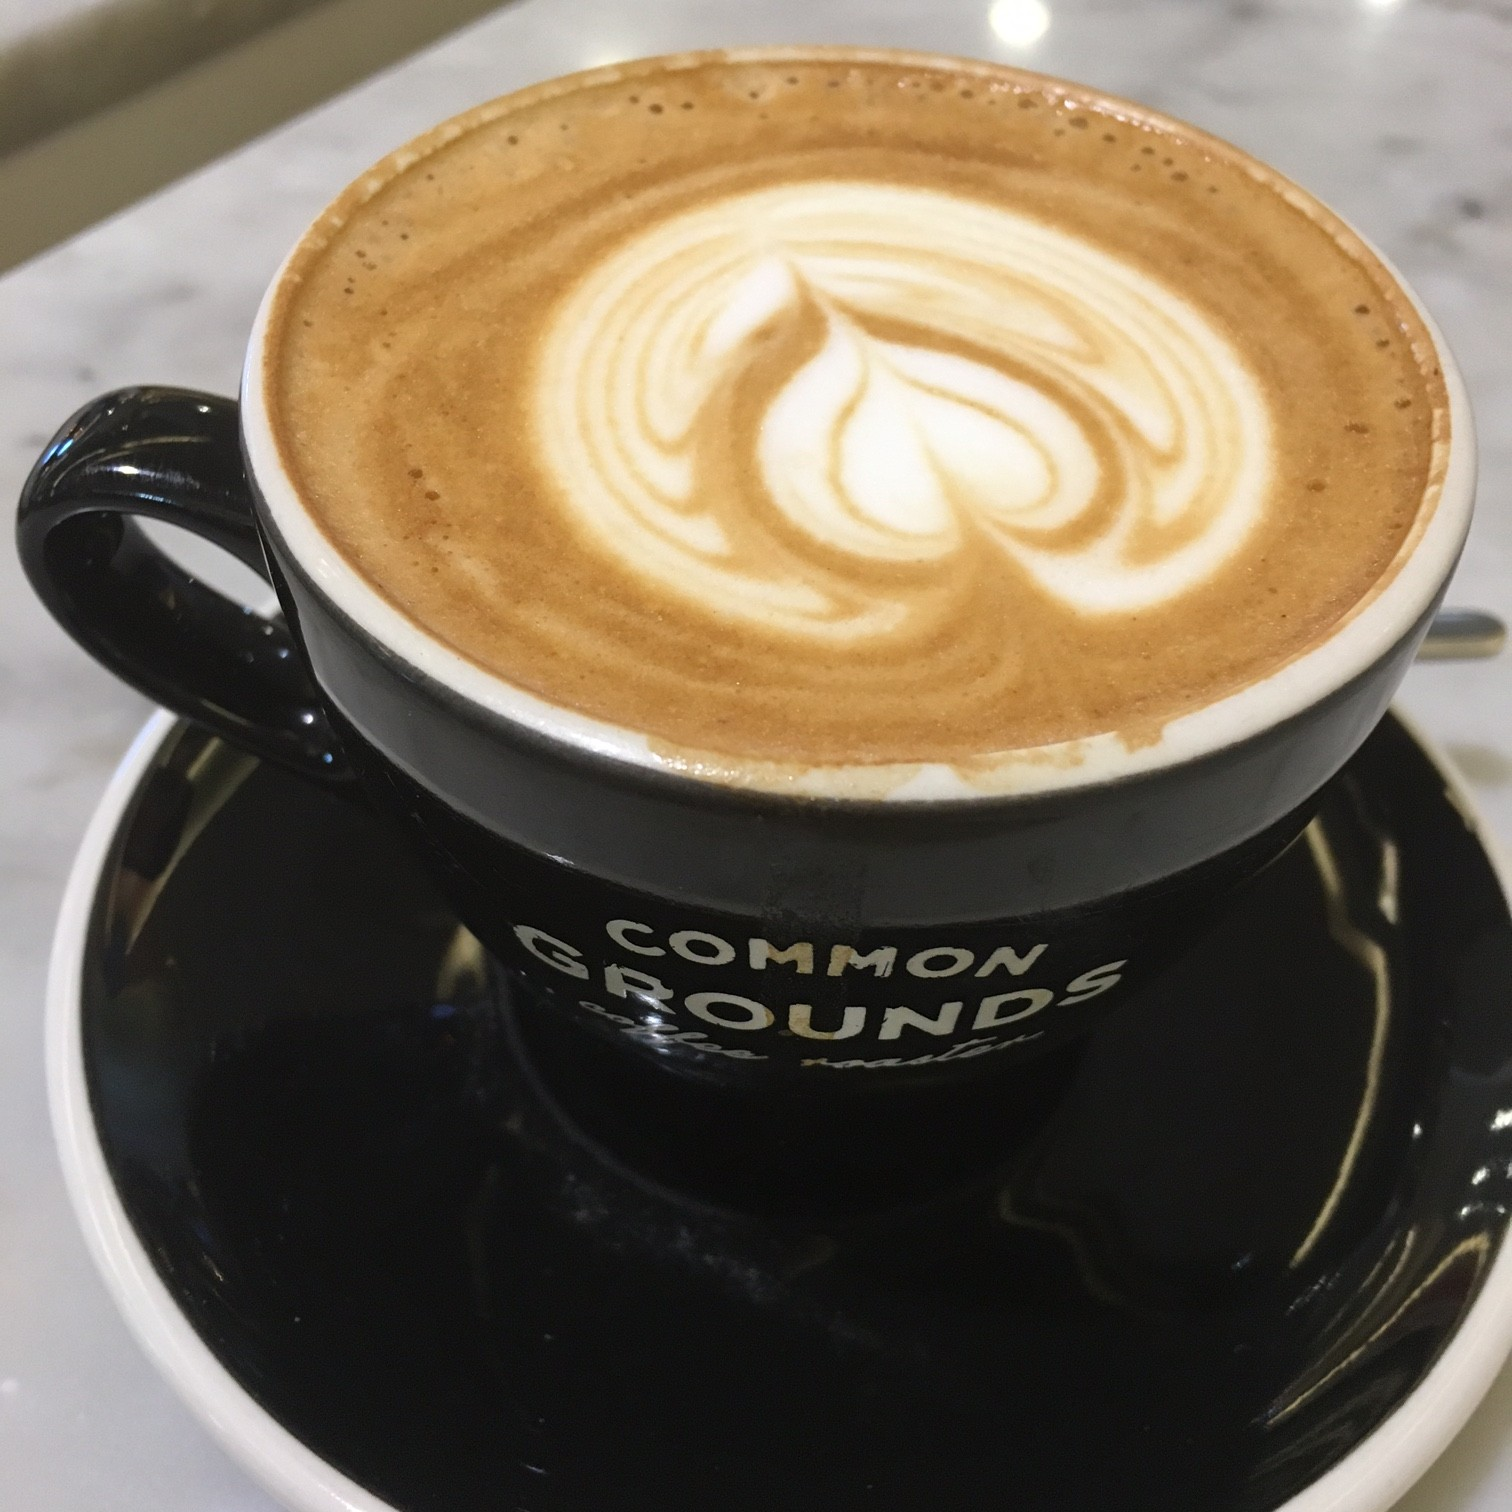 Good coffee of Common Ground is finally here!